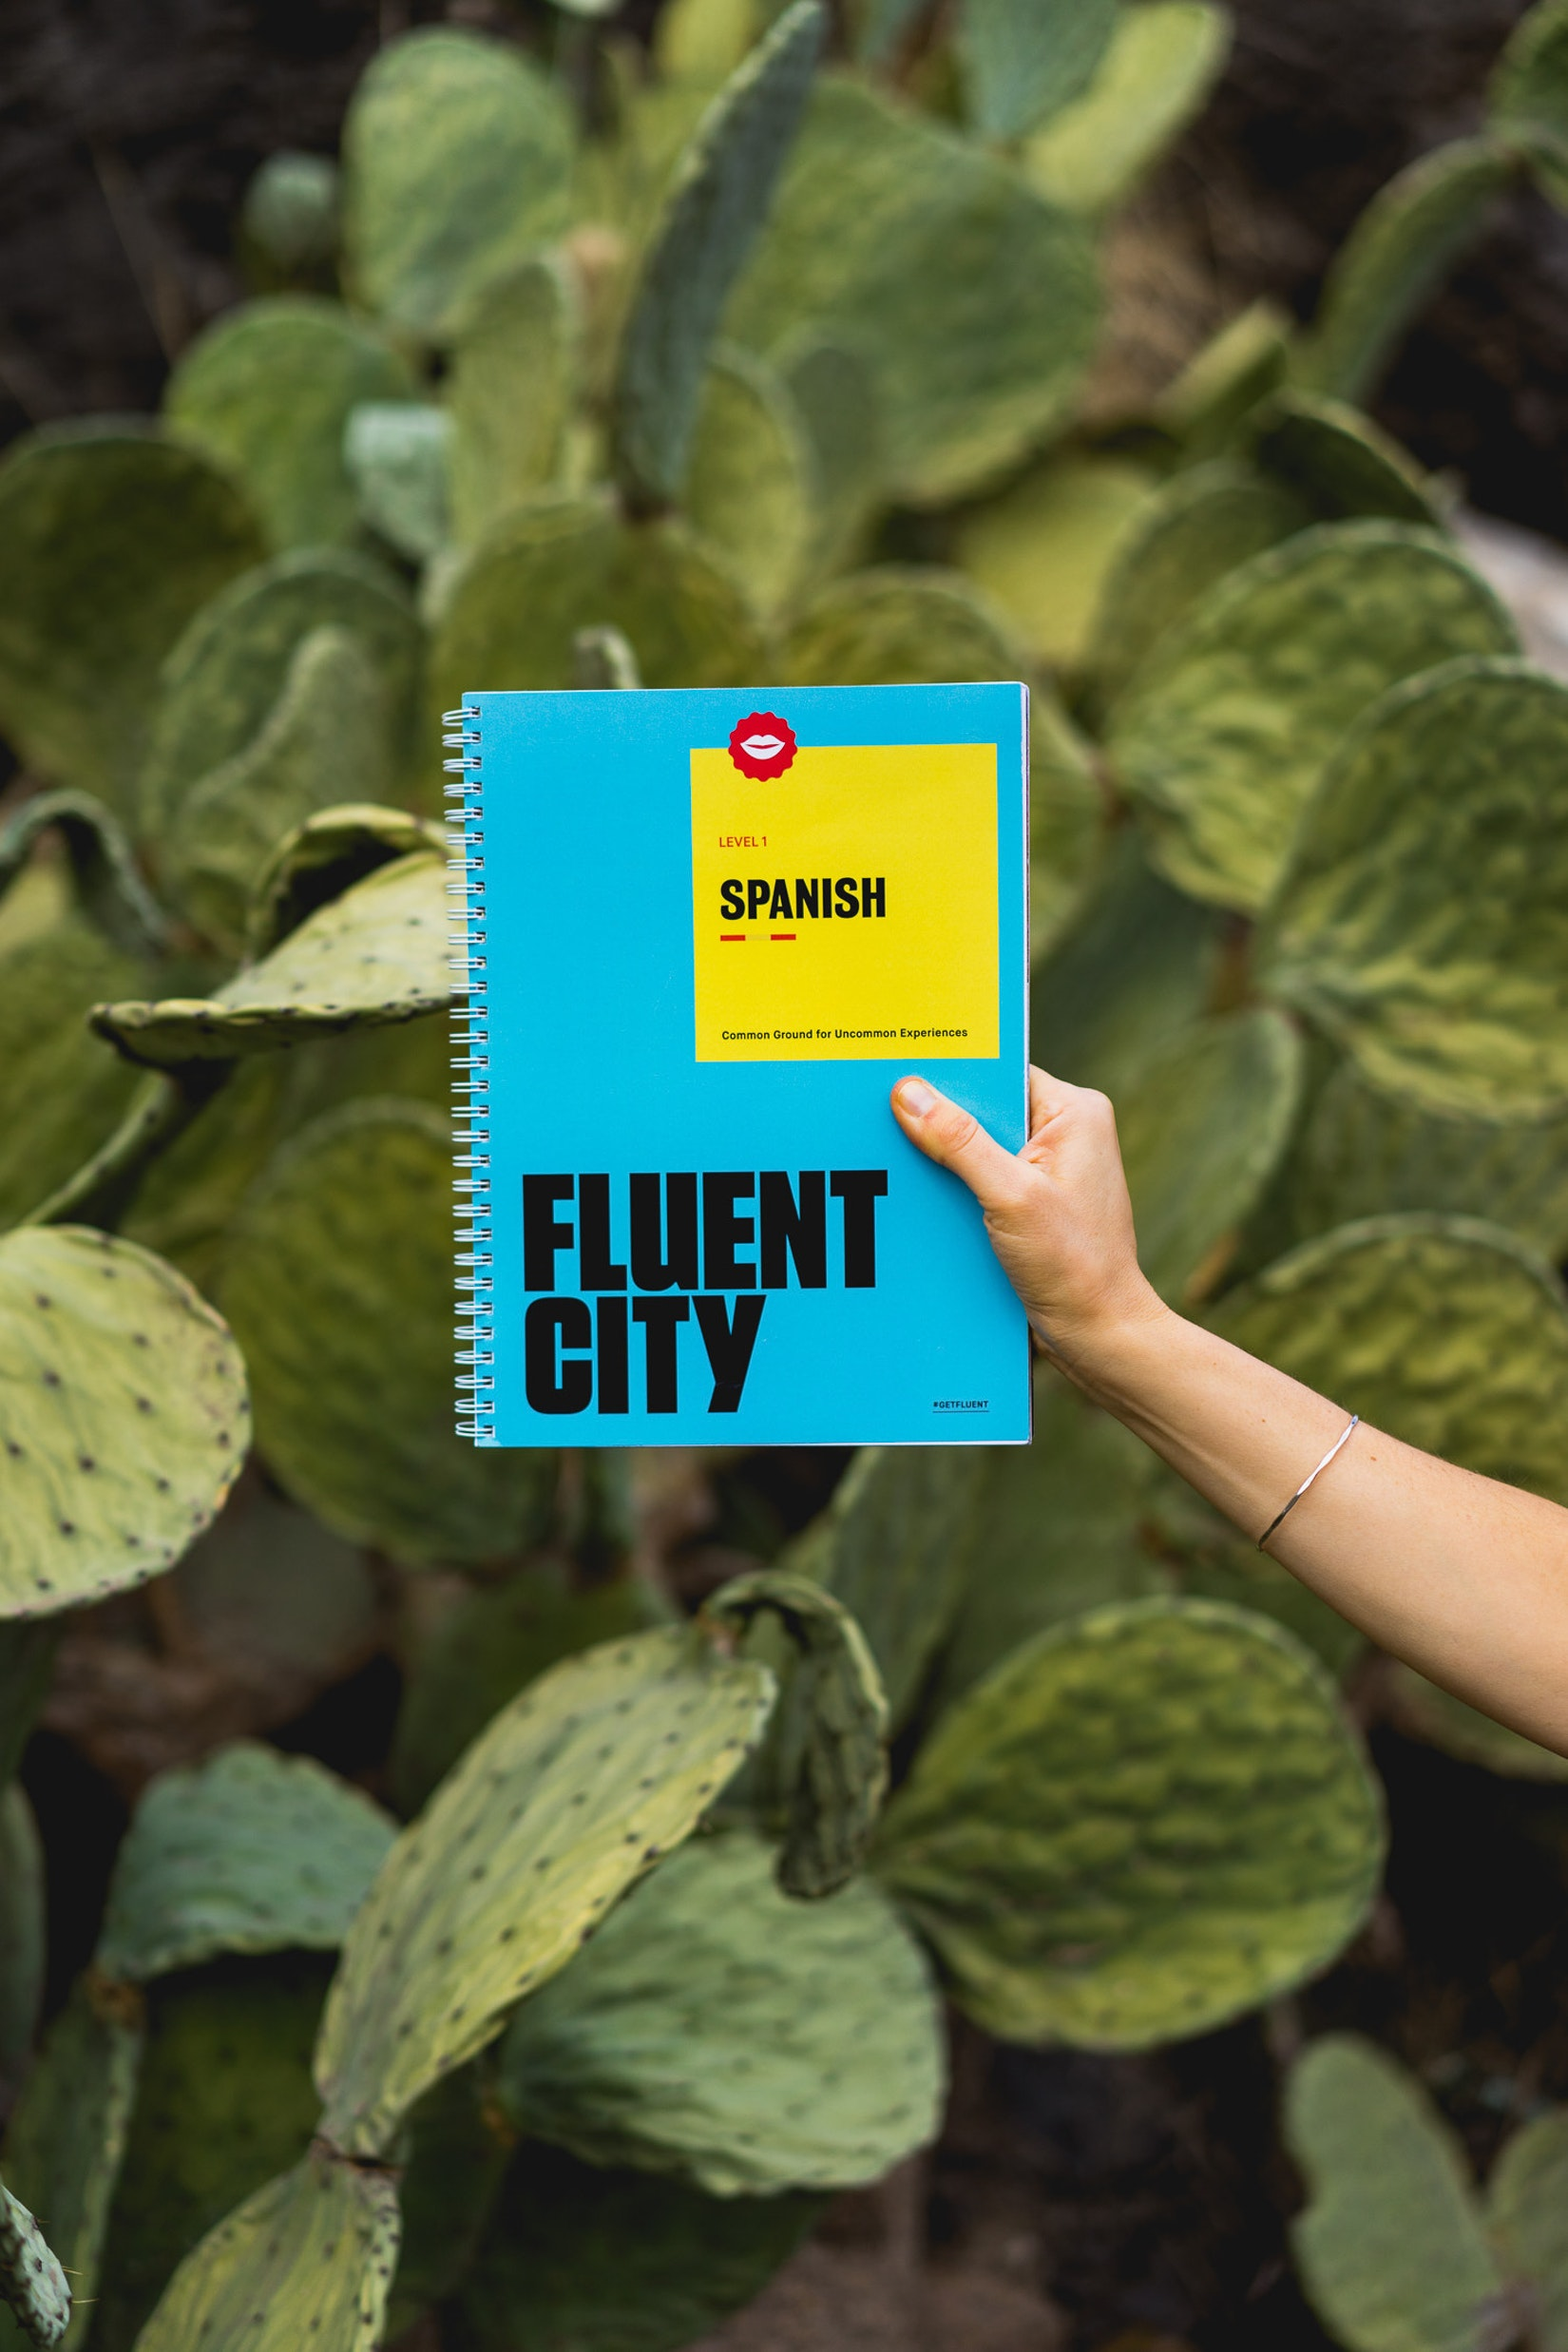 Fluent City book in front of cactus